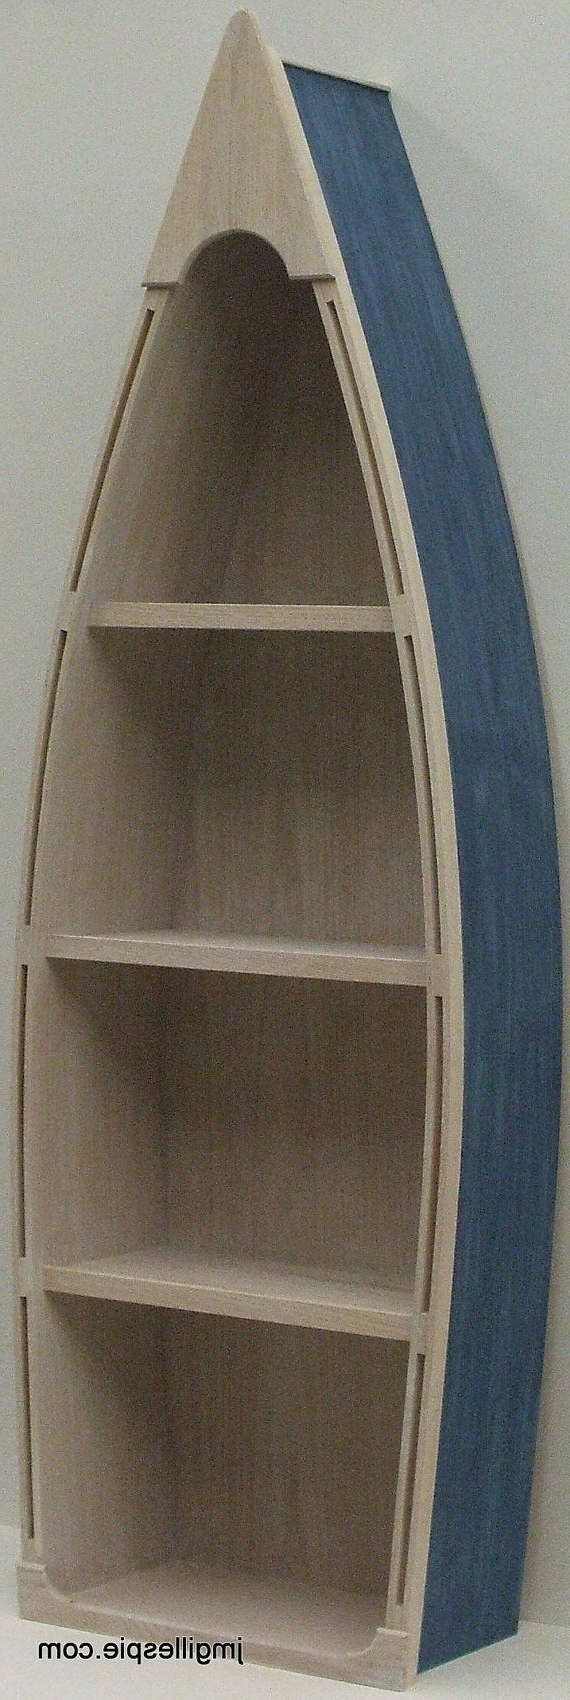 Most Recently Released Boat Bookcases Intended For 6 Ft Unfinished Row Boat Shelf Bookshelf Bookcase Hand Crafted (View 9 of 15)